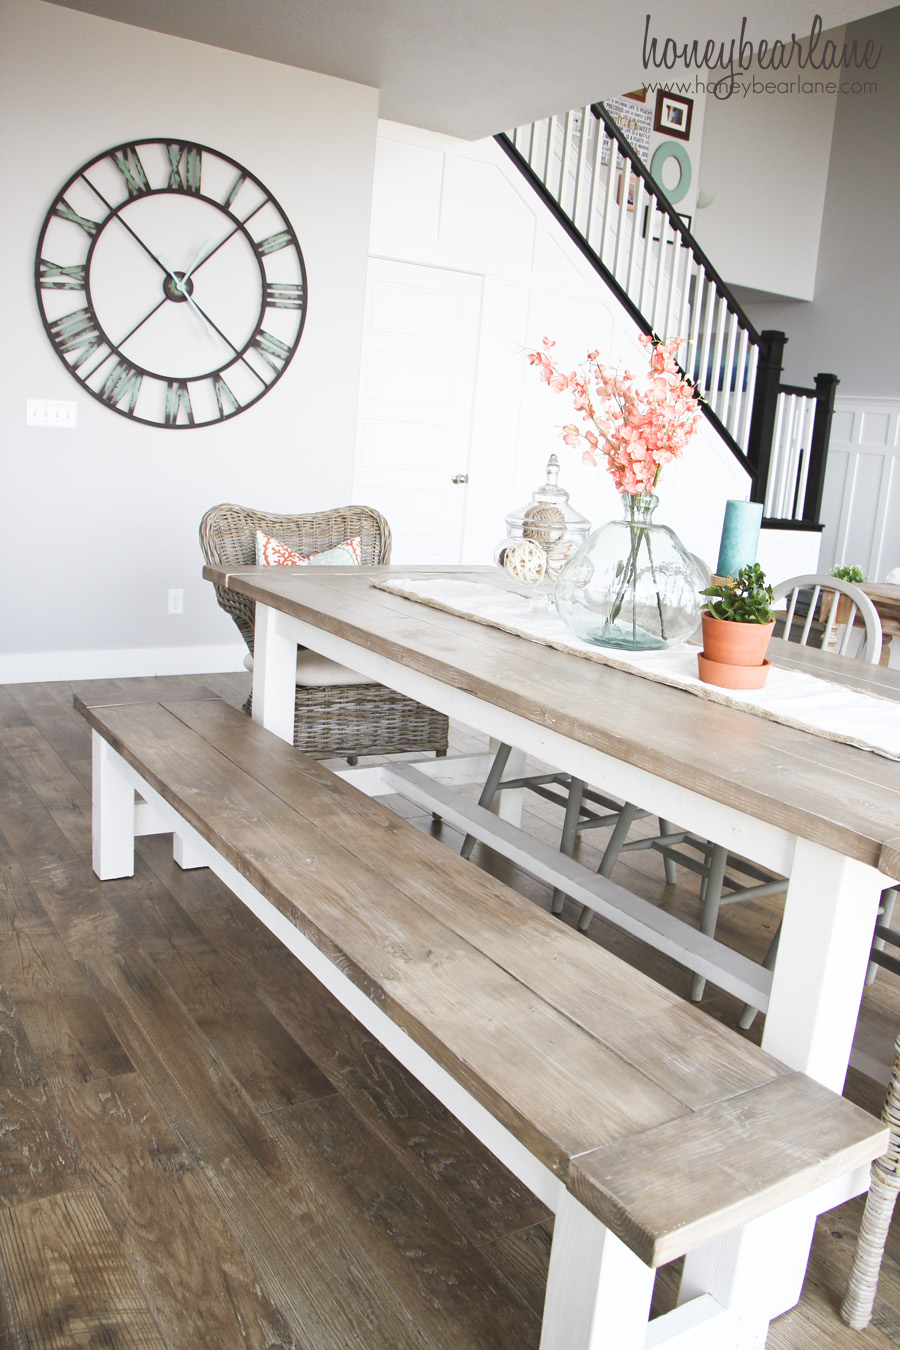 Farmhouse diy home decor ideas the 36th avenue Kitchen table with bench and chairs